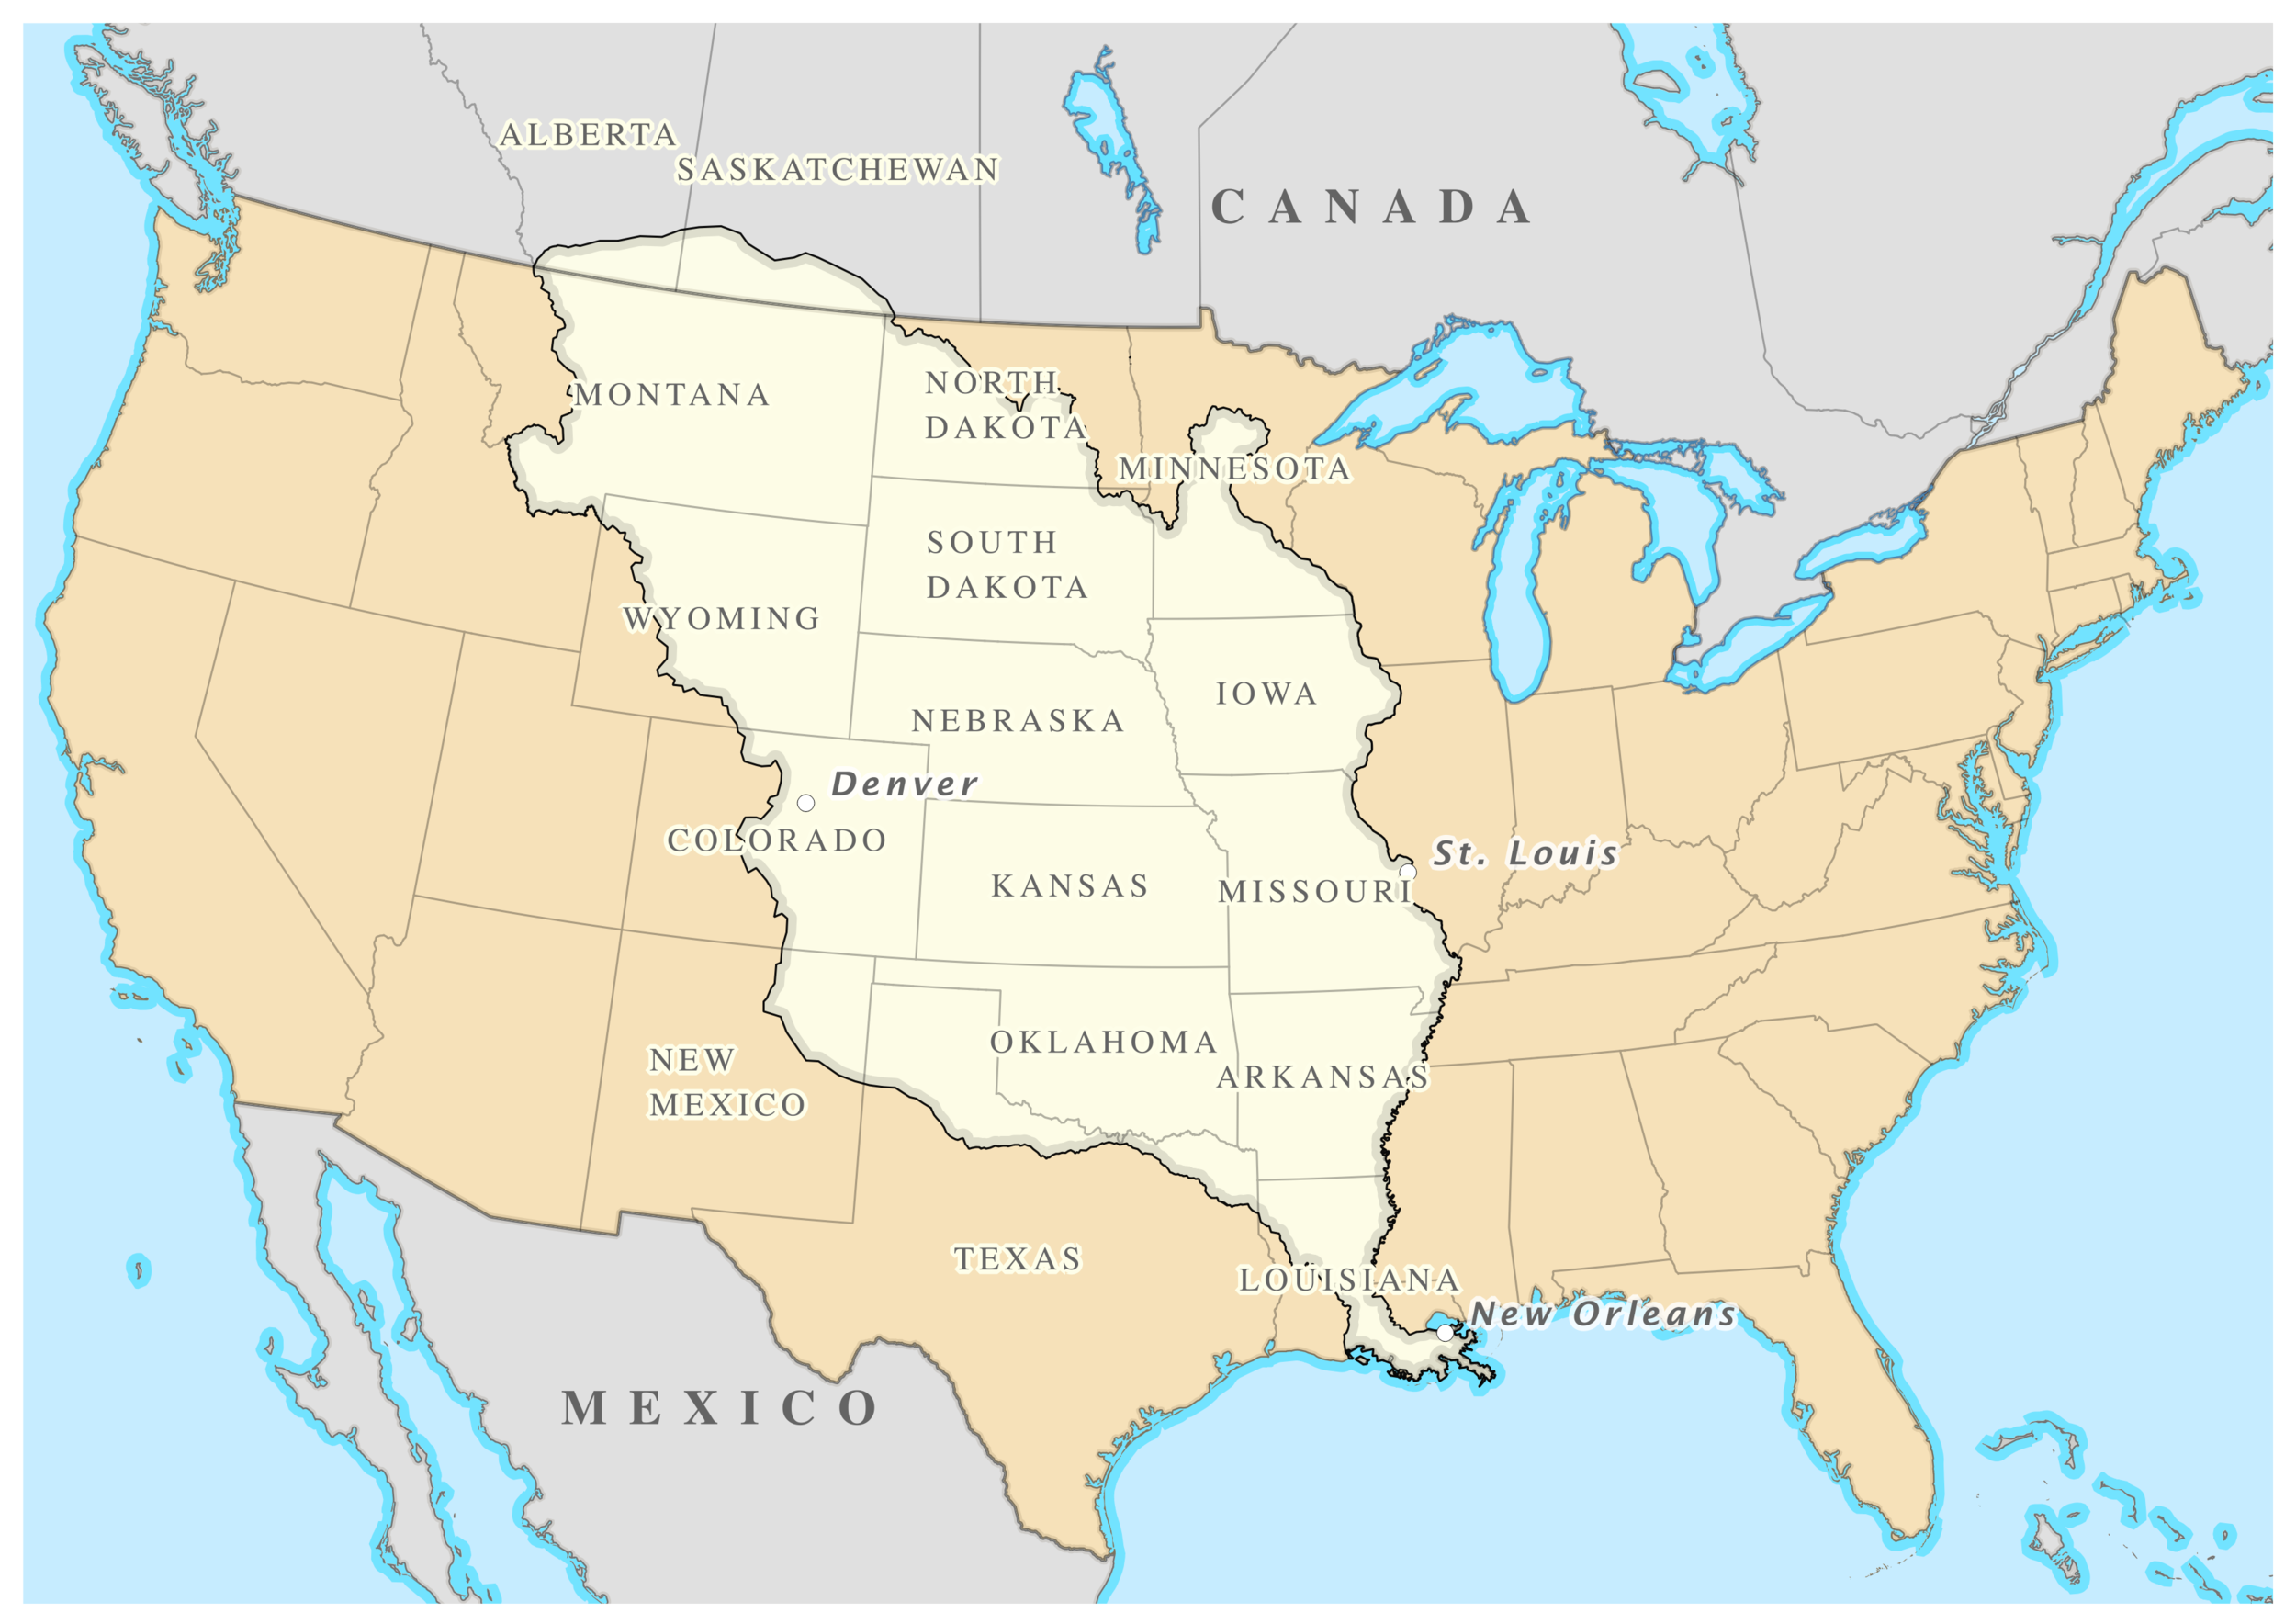 The Louisiana Purchase doubled the size of the United States. Thomas Jefferson must have been pretty pleased with himself about that one. - Courtesy of the Natural Earth and Portland State University.